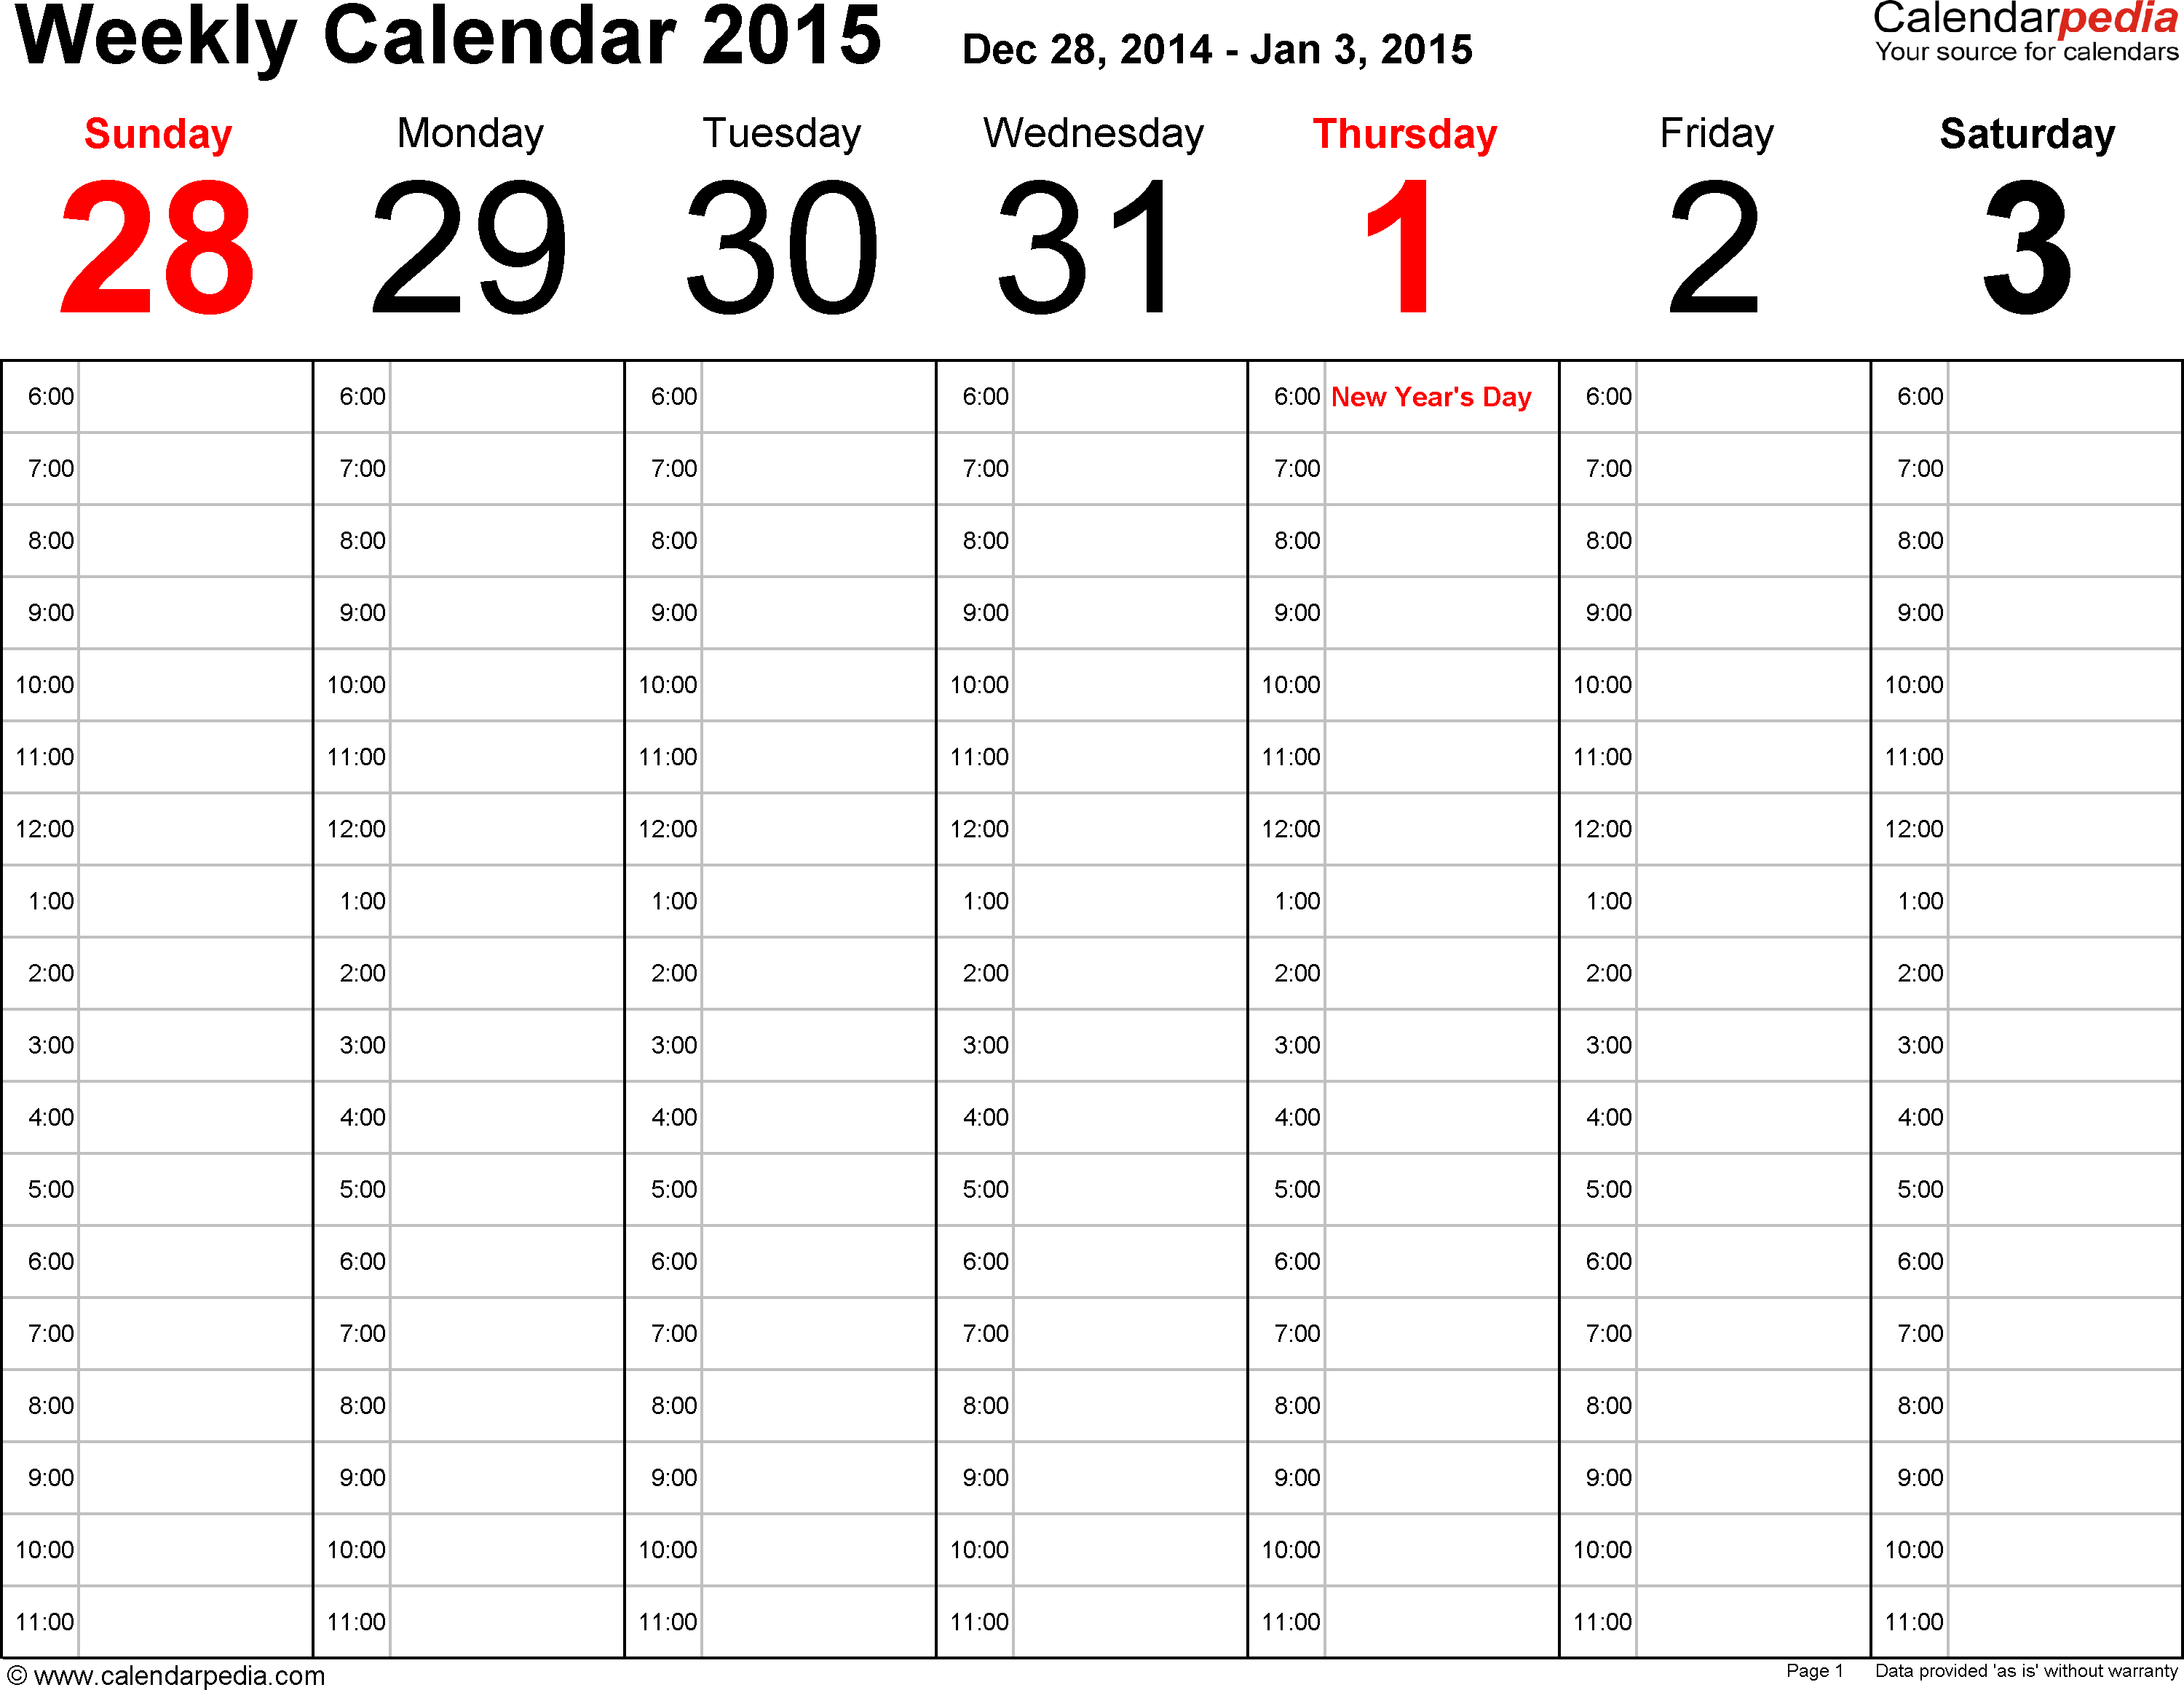 Weekly calendar 2015: template for Word version 1, landscape, 53 pages, time management layout (18 hours per day, 6am to 11.59pm)